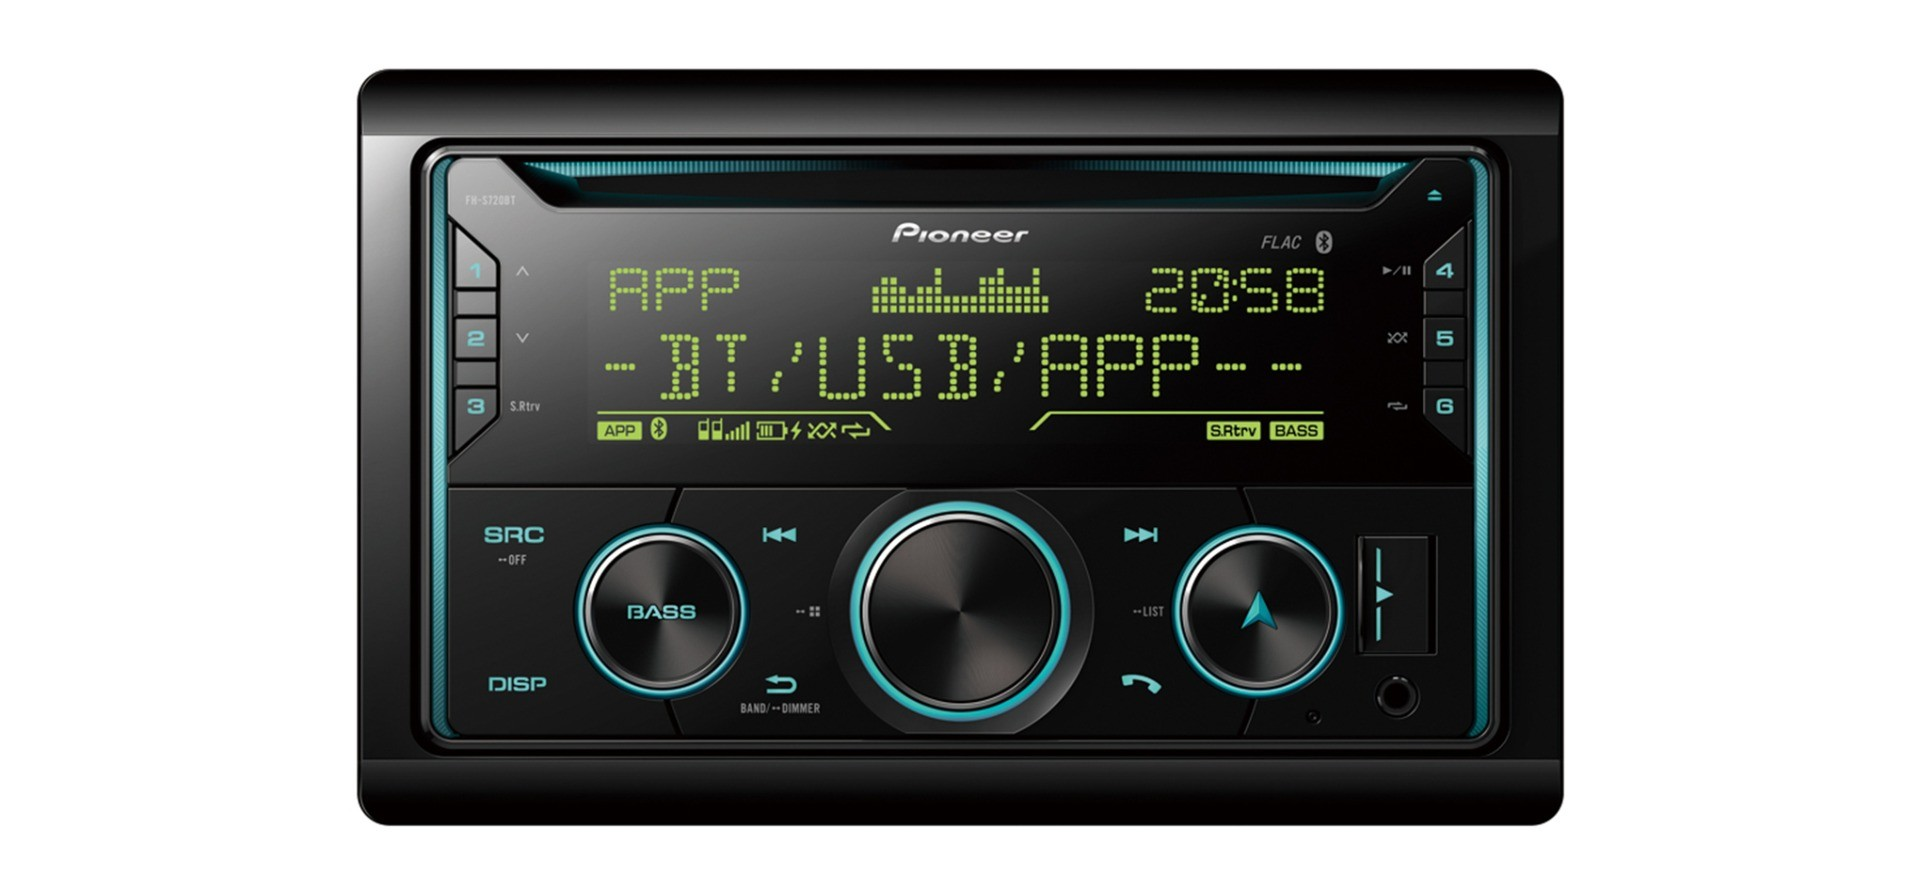 Pioneer FH-S720BT Receiver 2-DIN